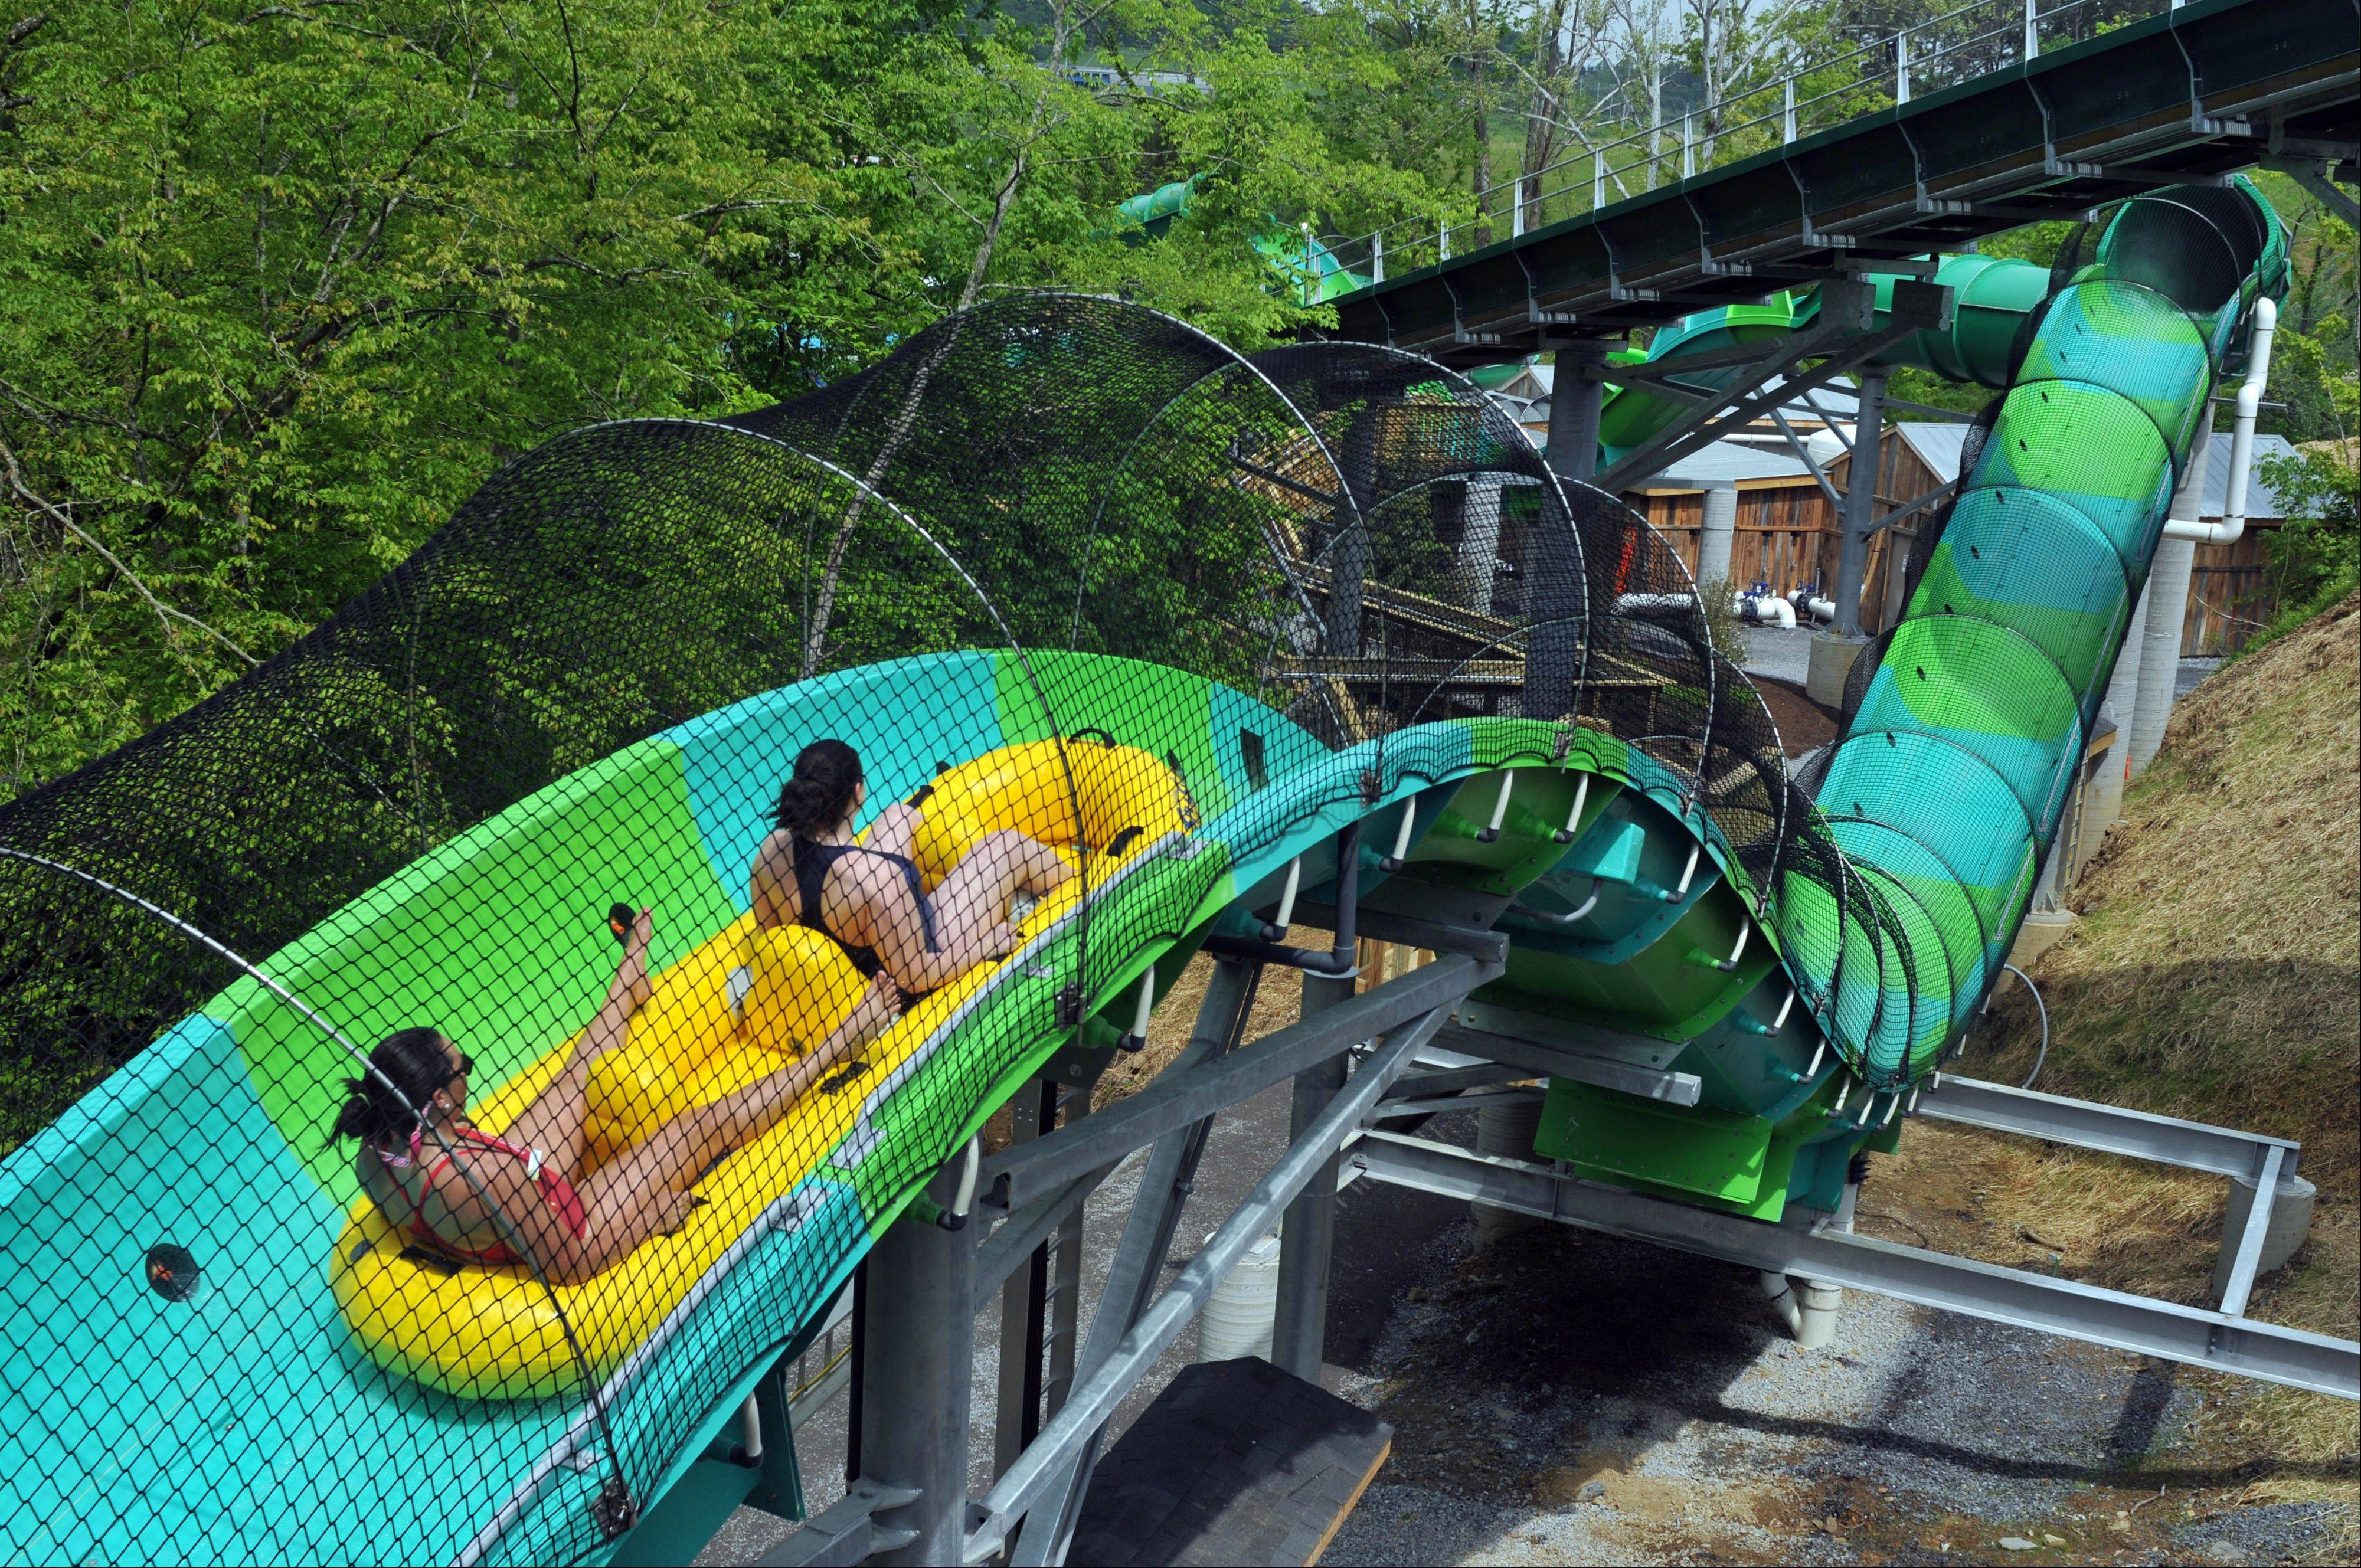 Visitors enjoy the RiverRush ride at the Dollywood theme park in Pigeon Forge, Tenn.